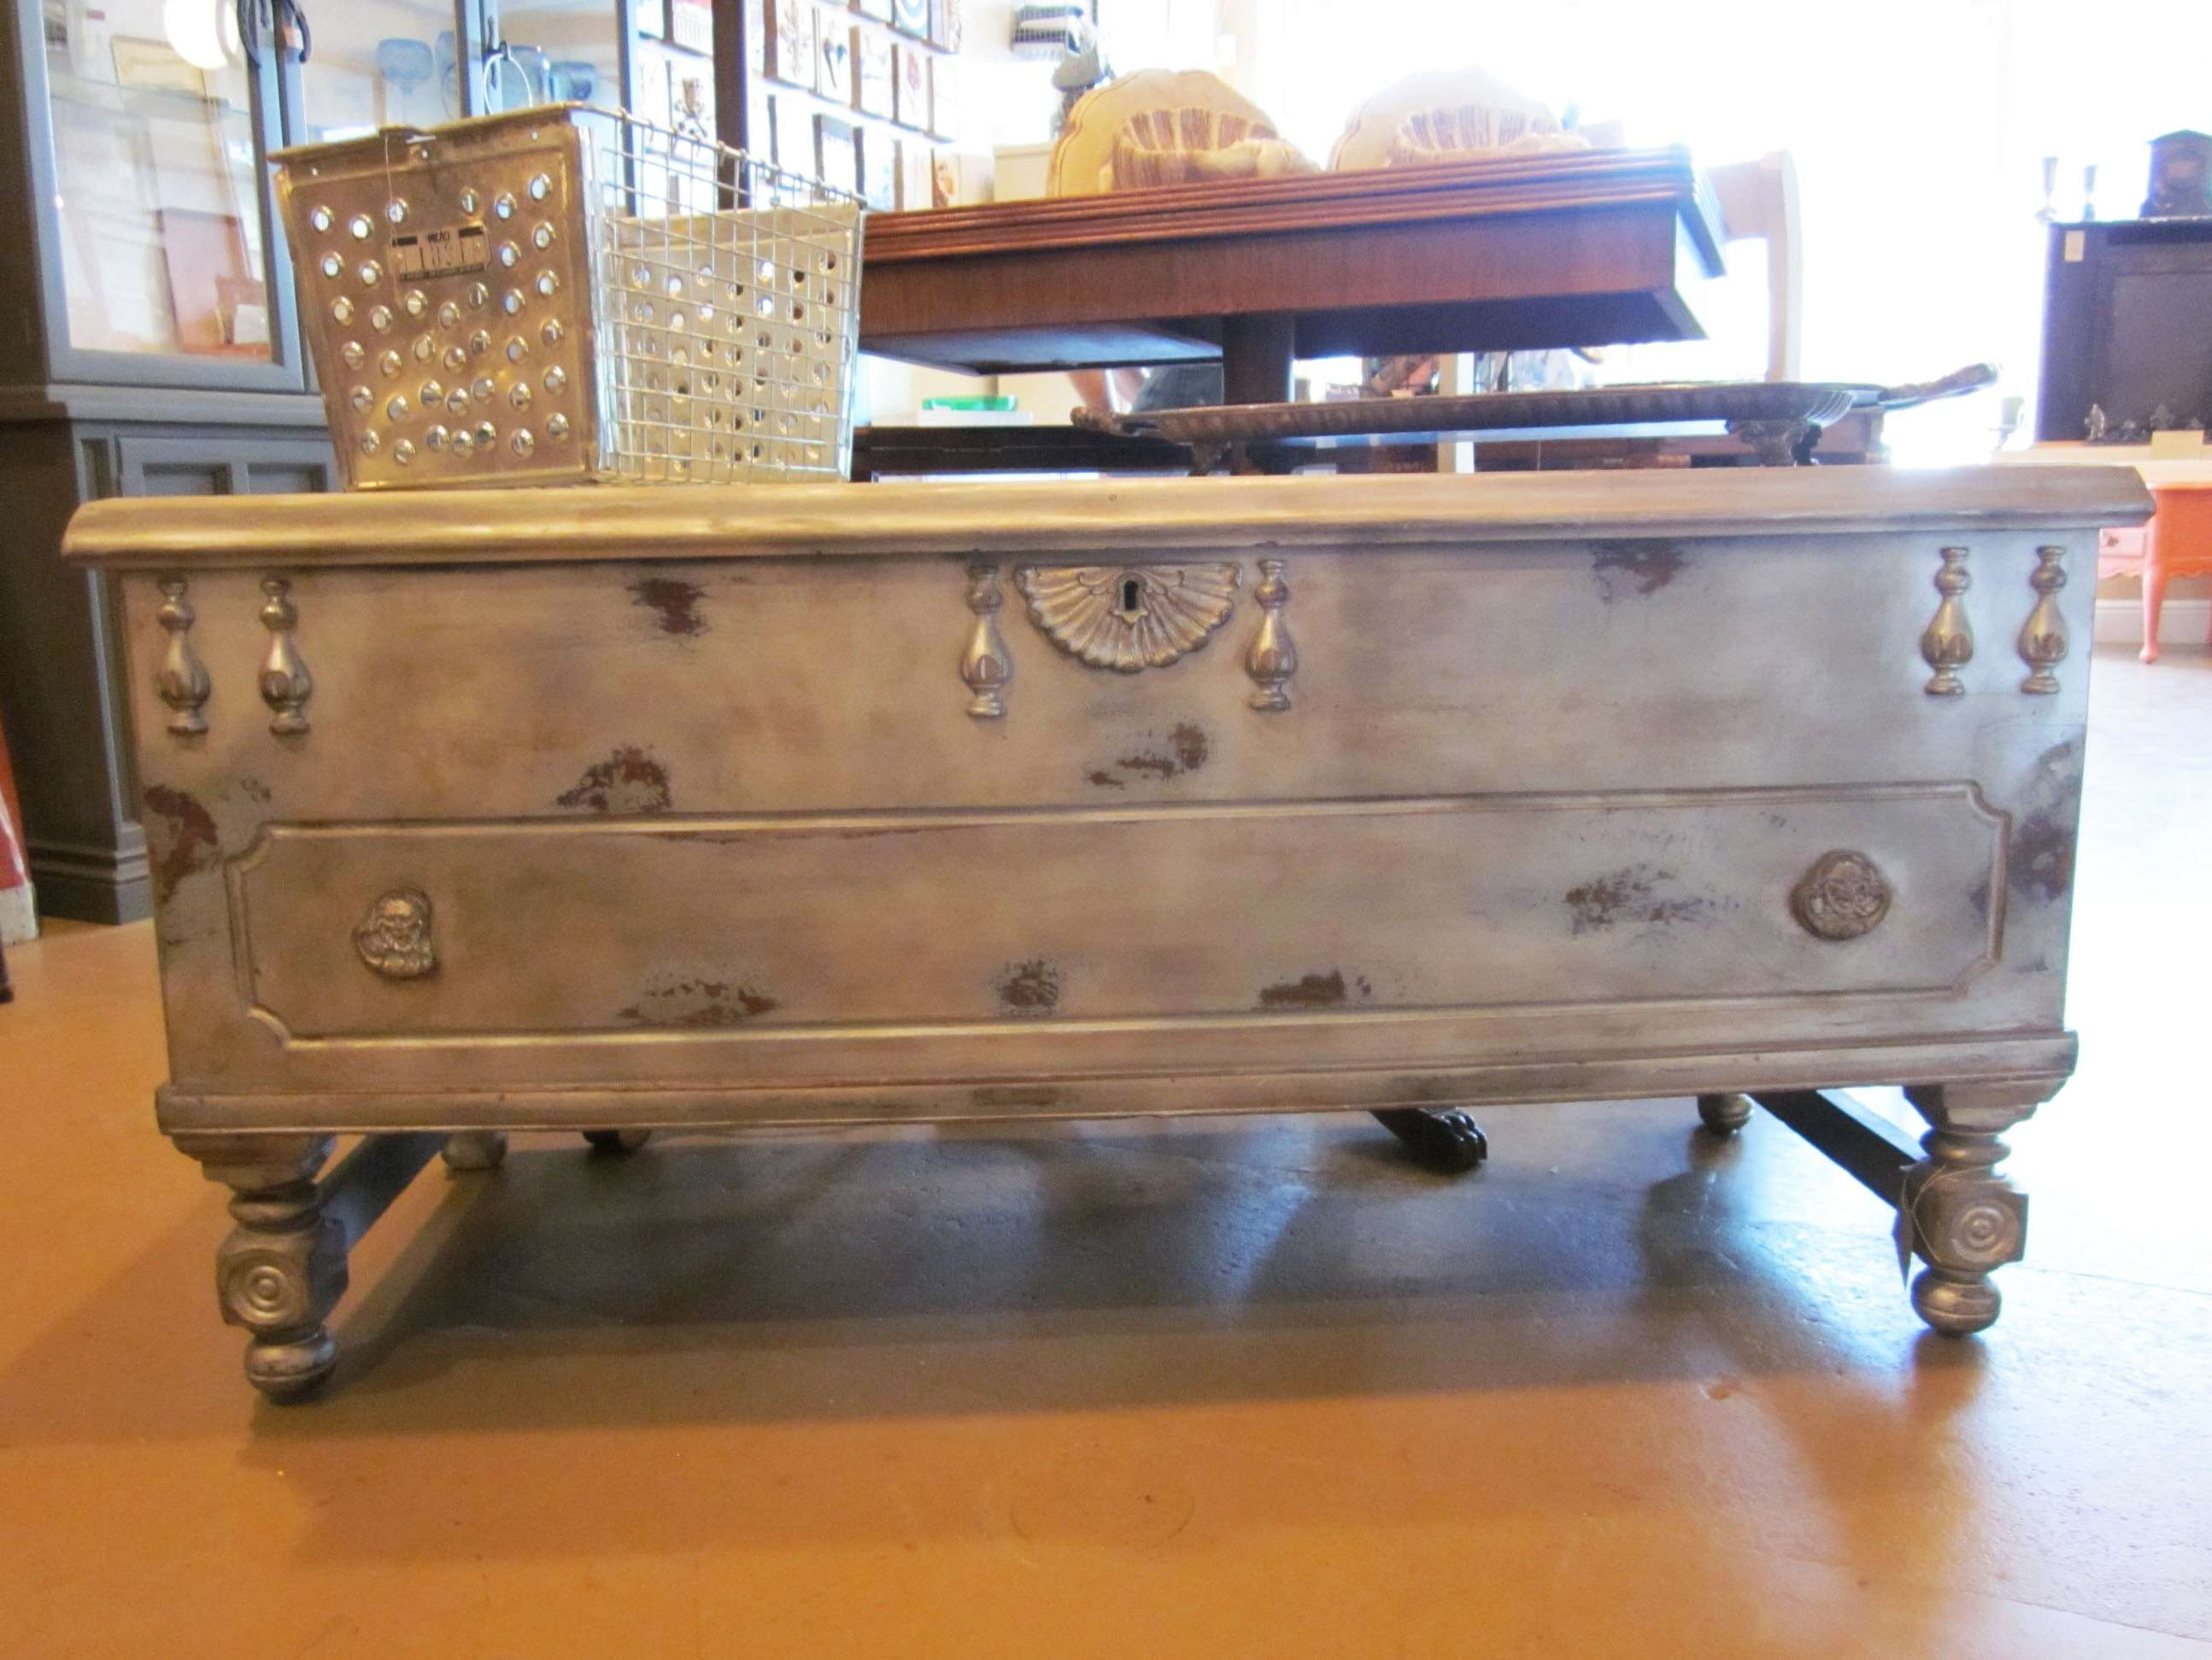 Well Known Old Trunks As Coffee Tables For Steamer Trunk Coffee Tables Have Unique & Rustic Designs (View 12 of 20)